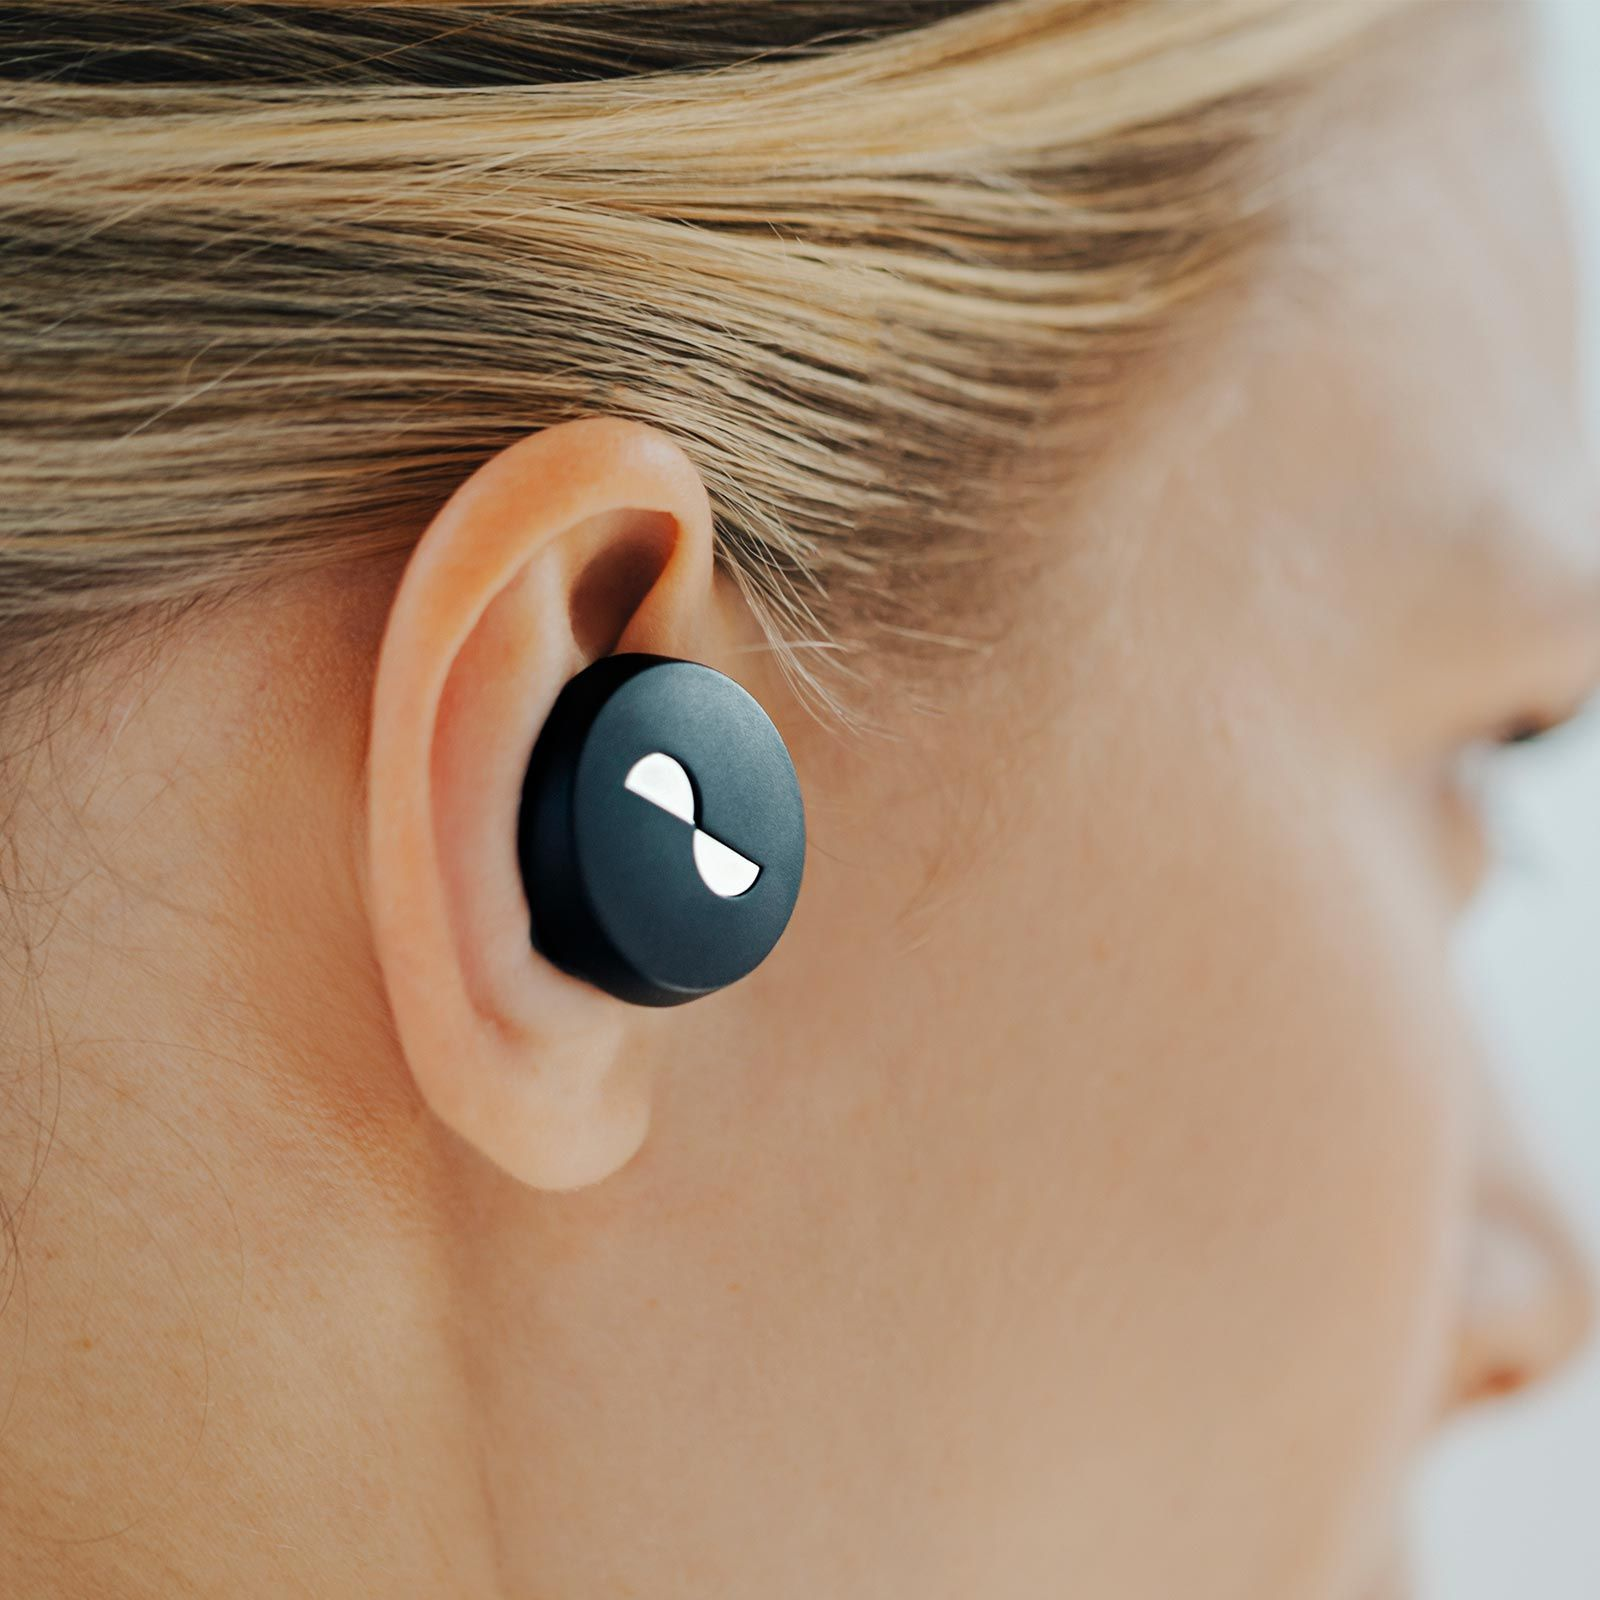 Close-up of NURATRUE earbuds in person's ears